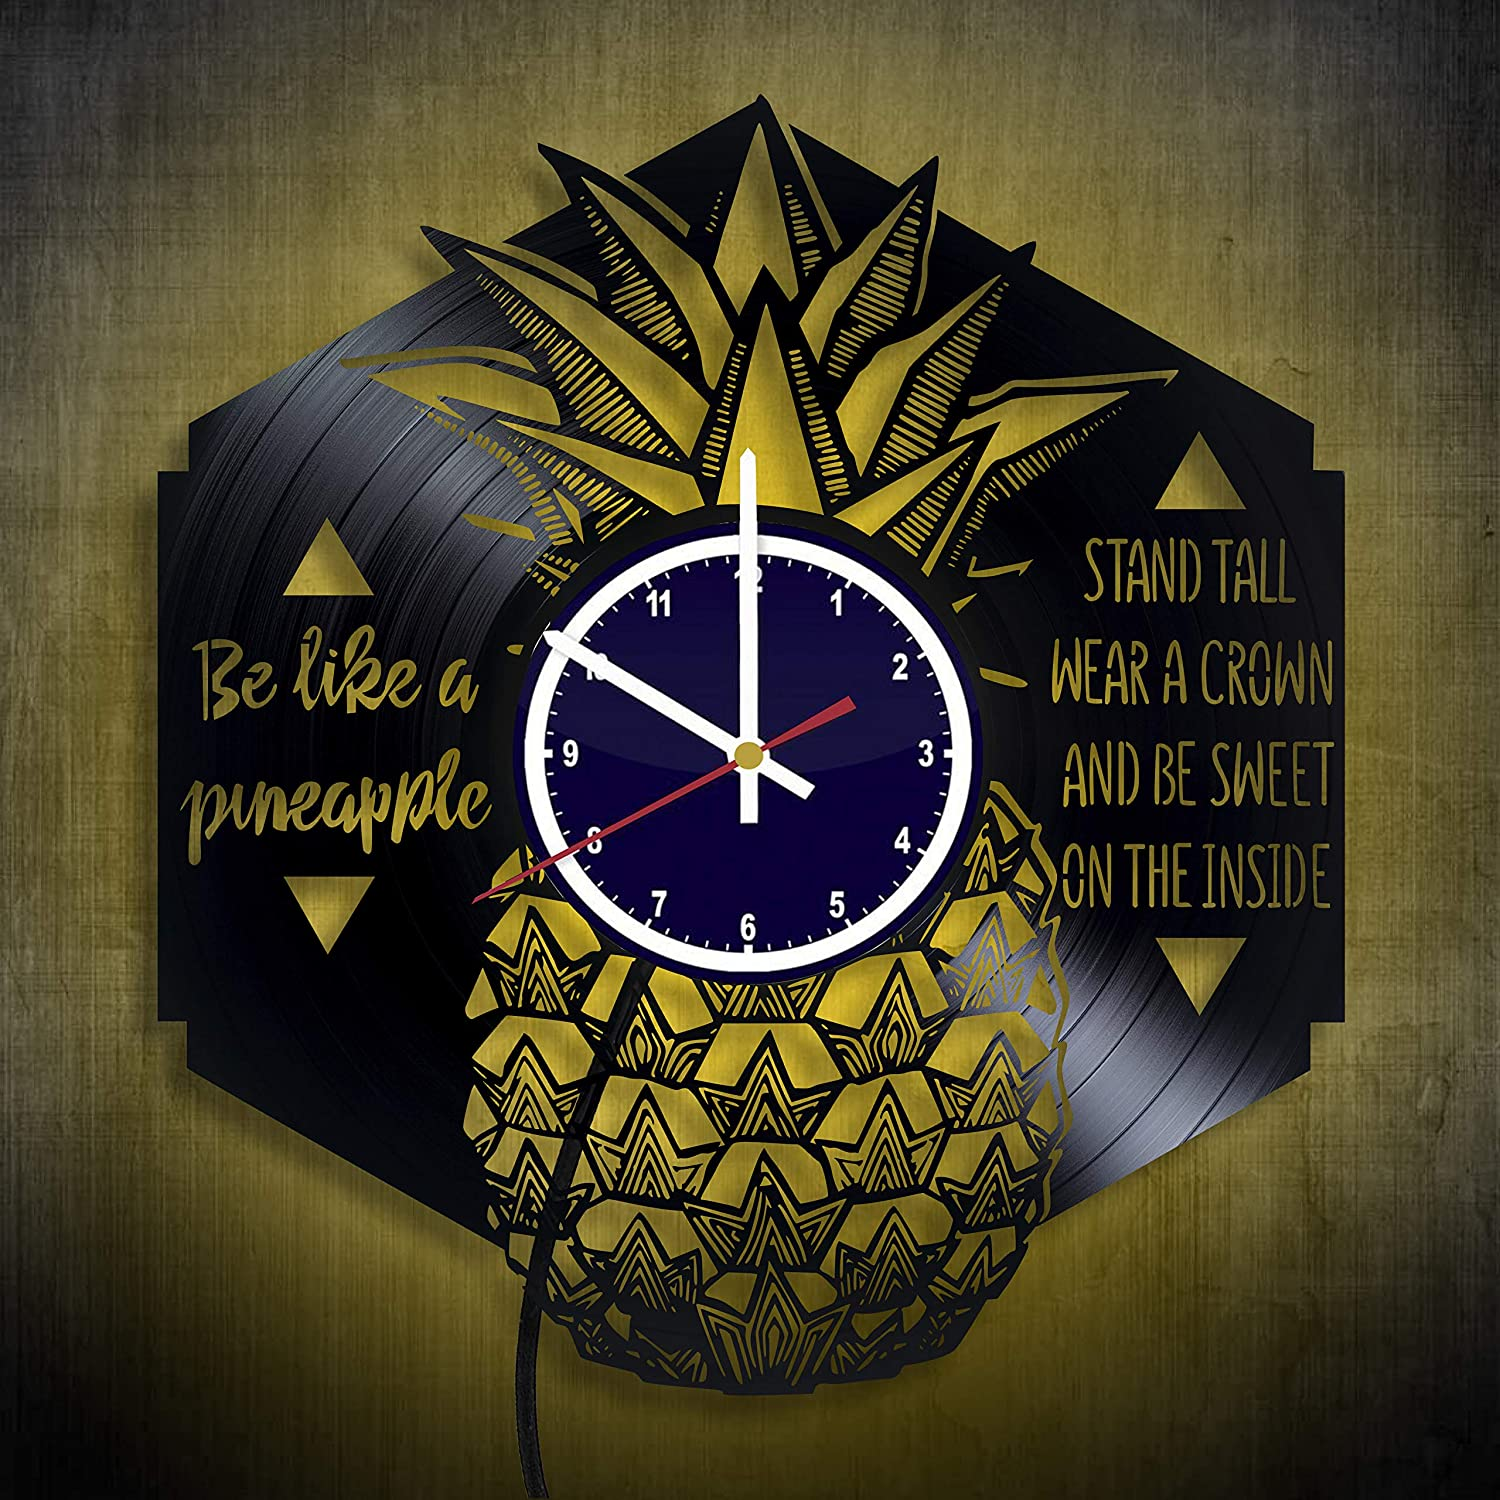 pineapple party decorations home sign gifts for teachers pineapple party decor Pineapple Gifts for Girls Wall Clock Night light